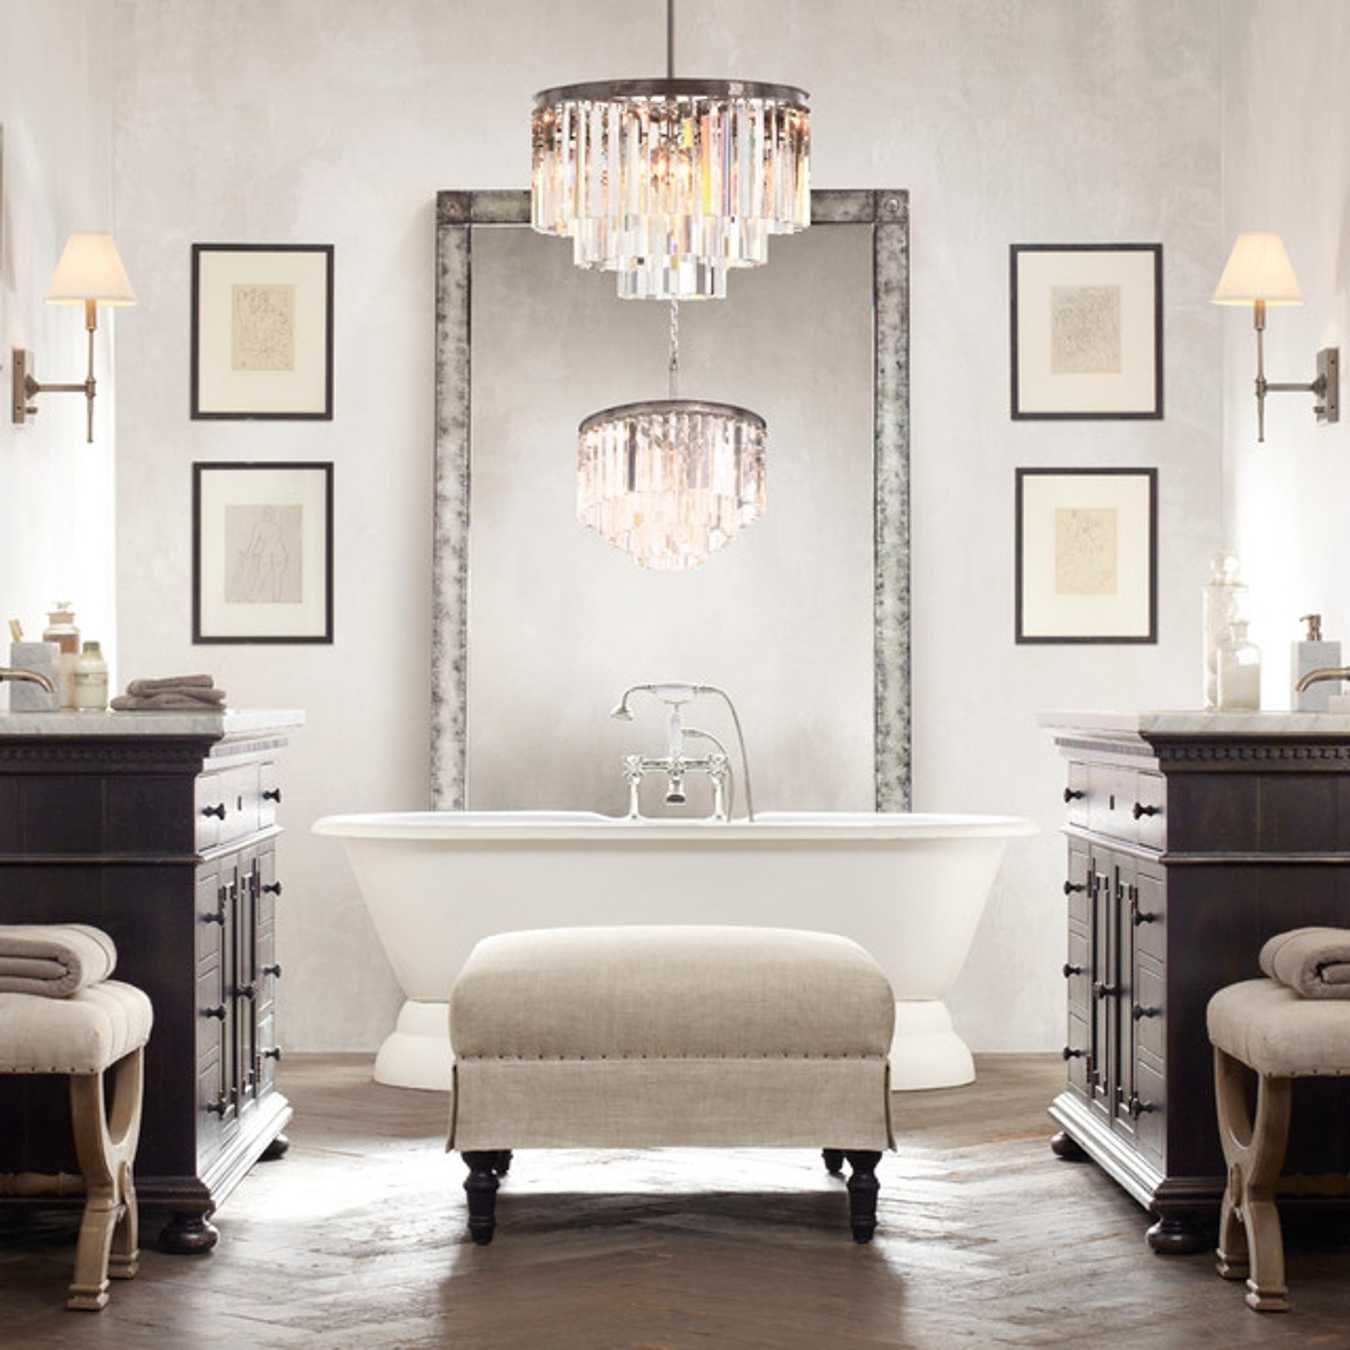 Widely Used Bathroom Chandeliers With Regard To Pendant Lights (View 15 of 15)